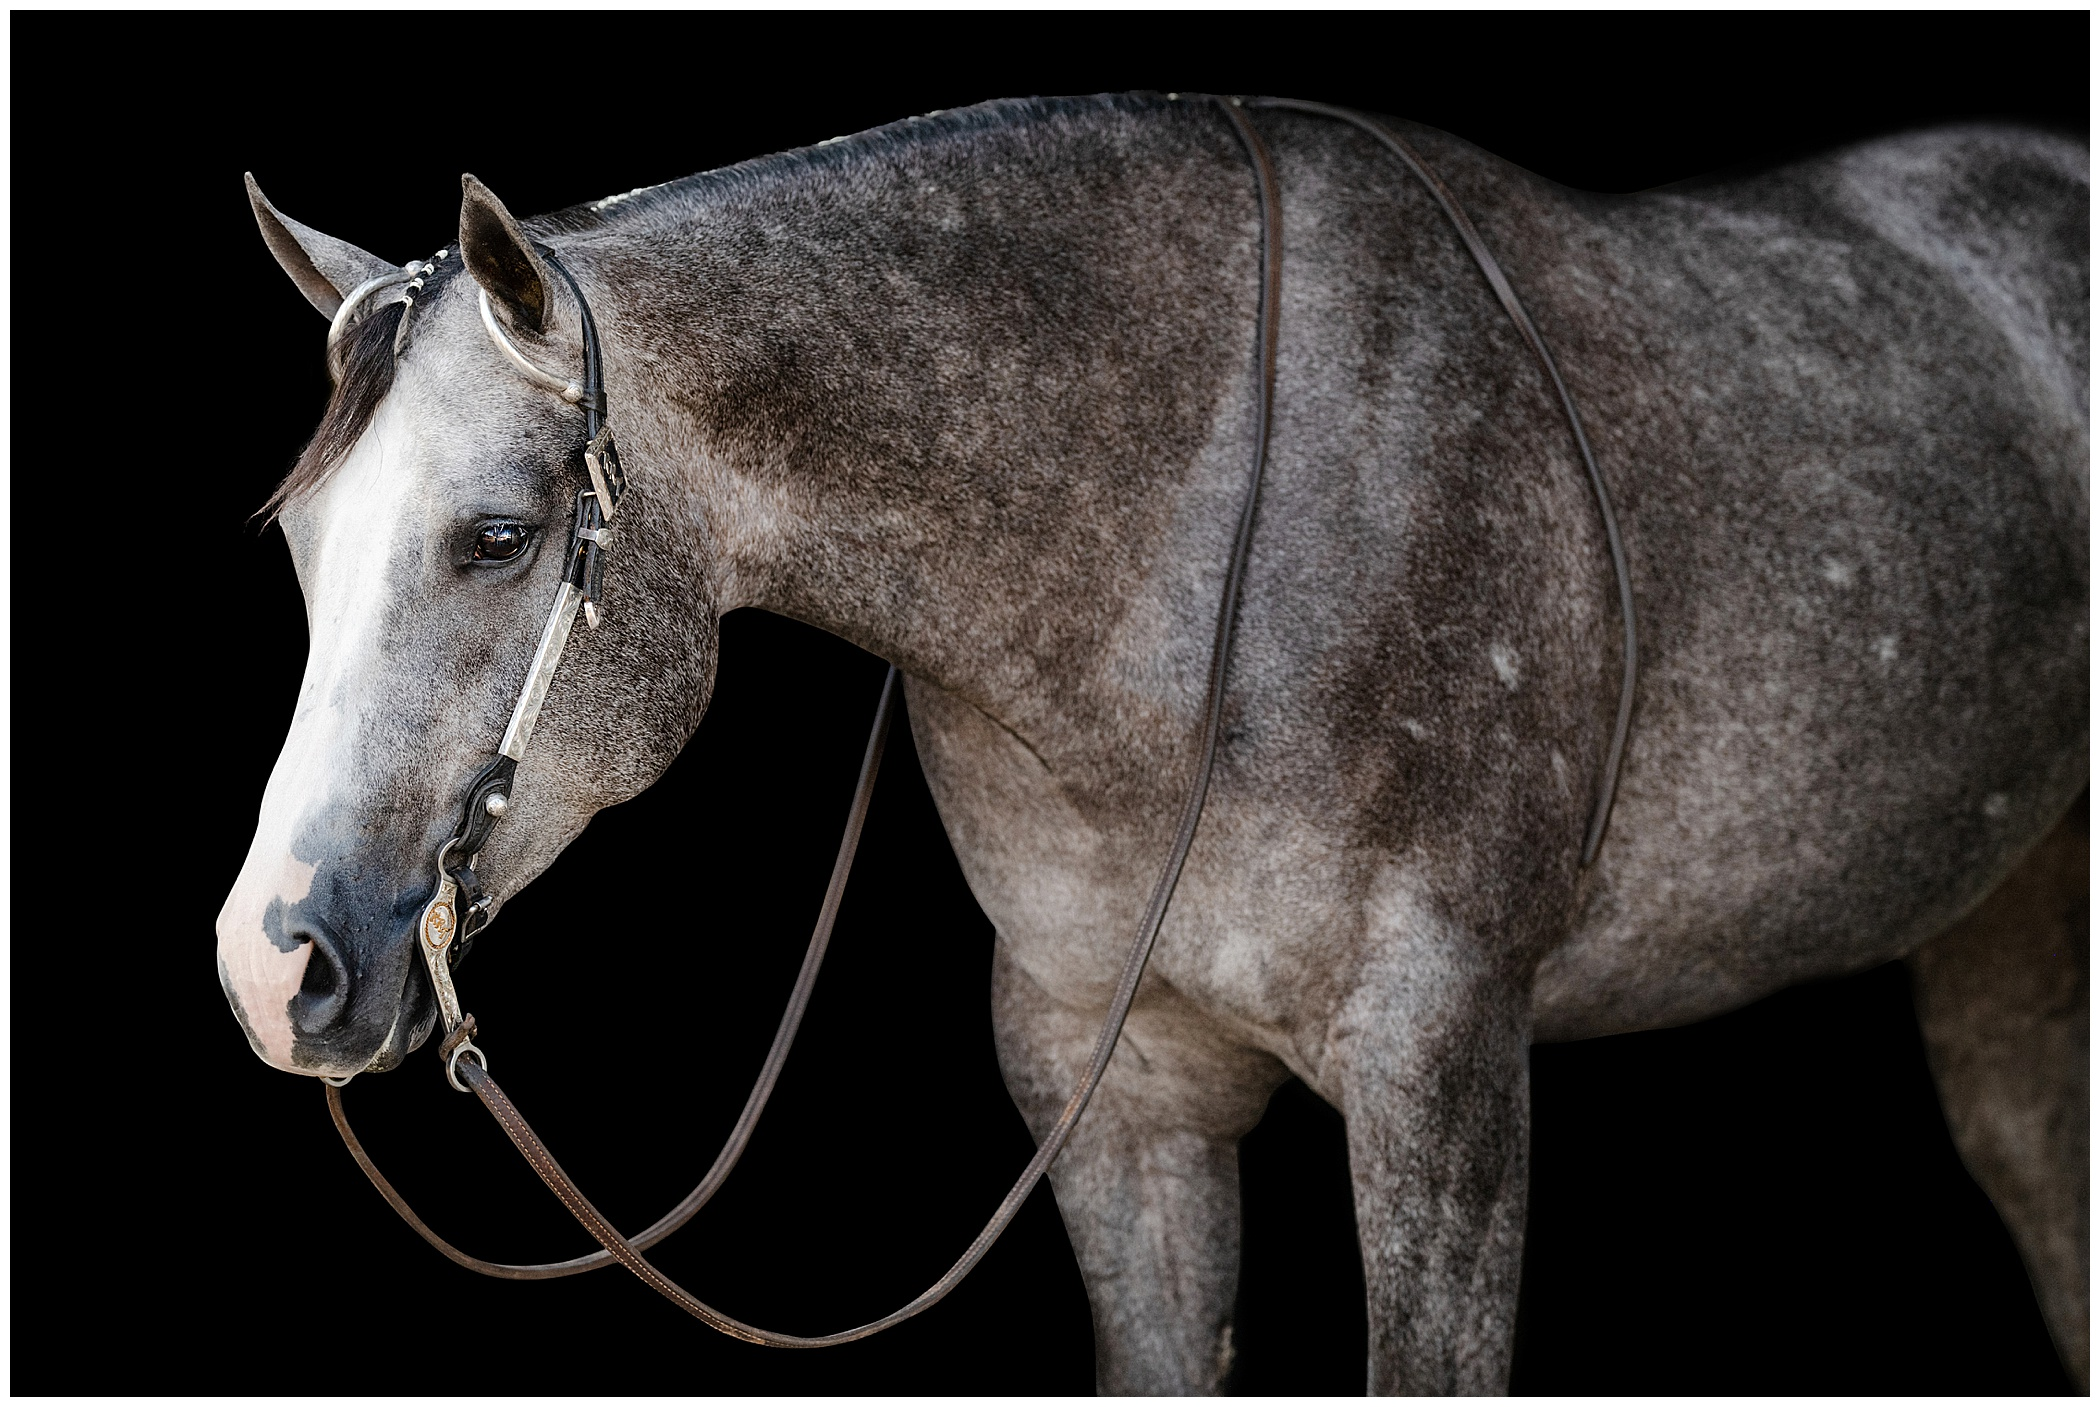 Gray horse on a black background in a western bridle